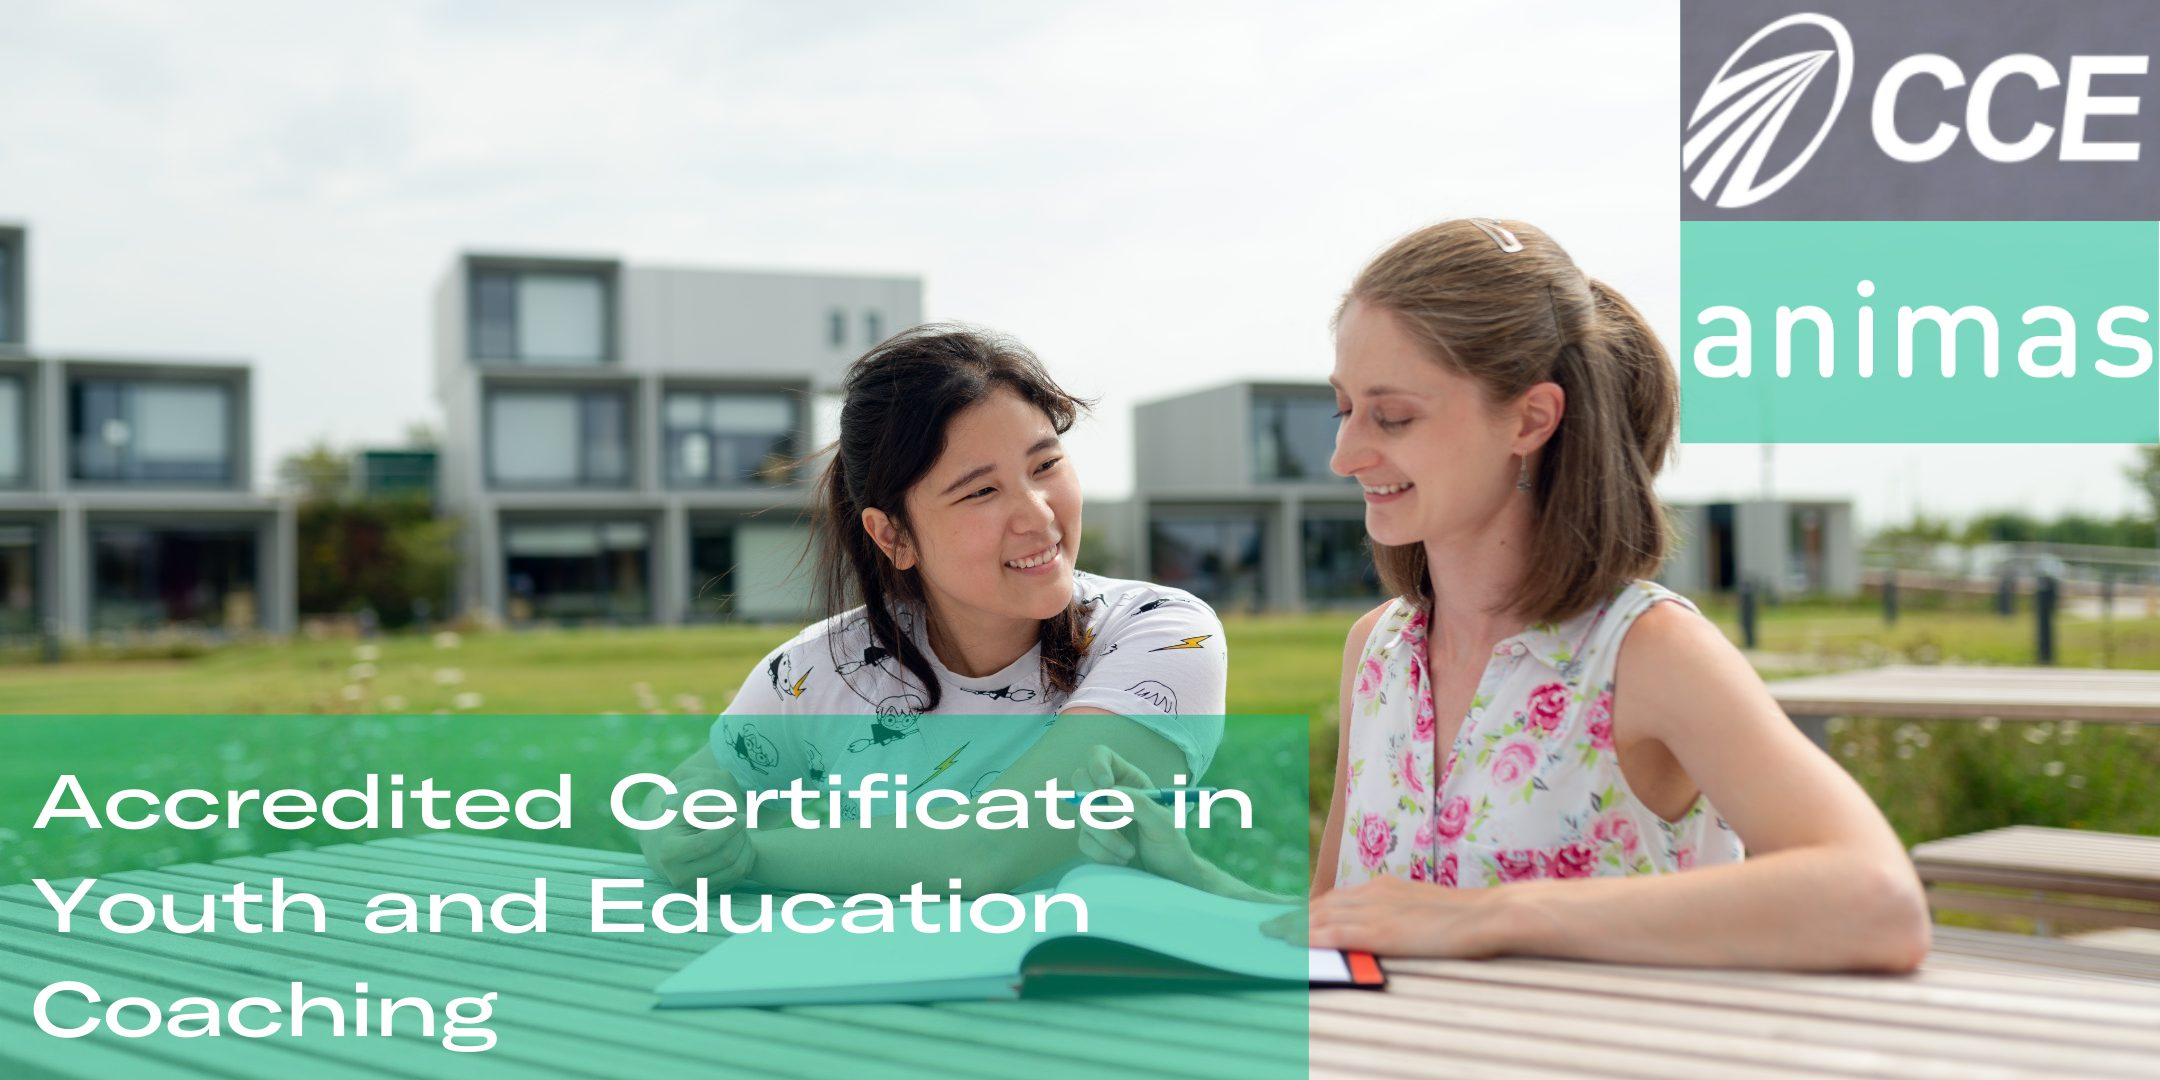 Accredited Certificate in Youth and Education Coaching